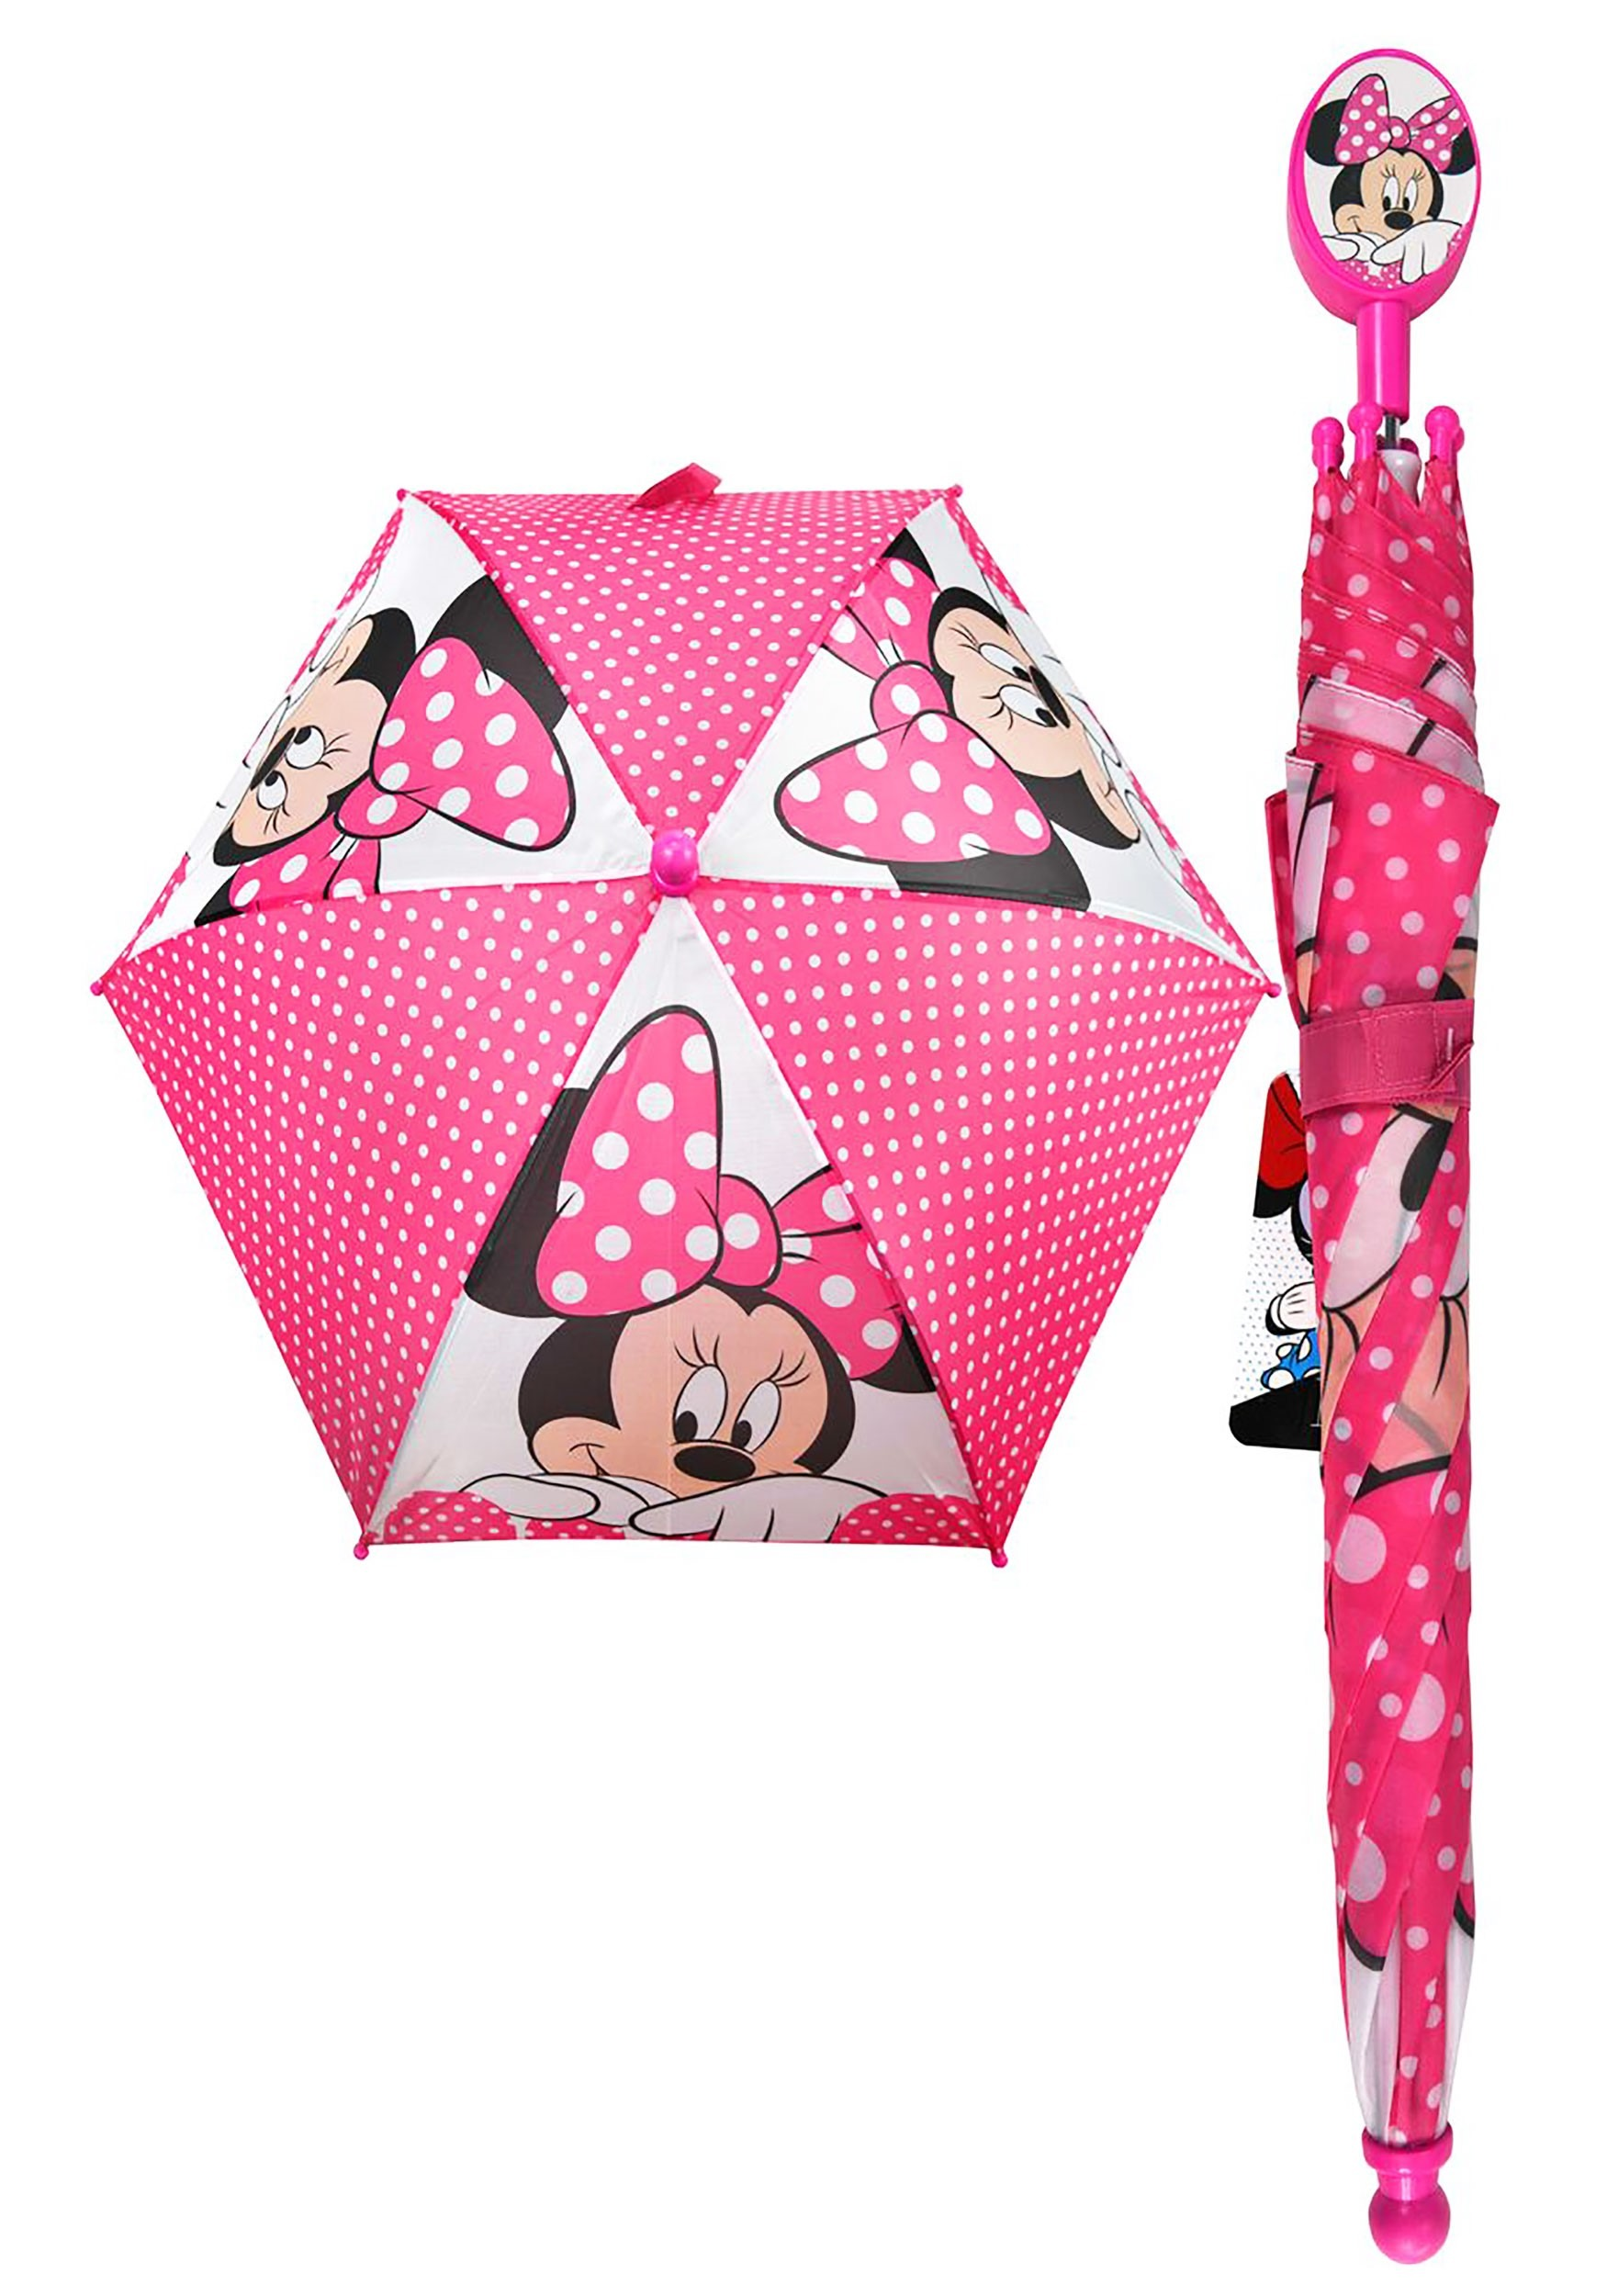 2020 fast delivery detailed look Disney Minnie Mouse Kids Umbrella